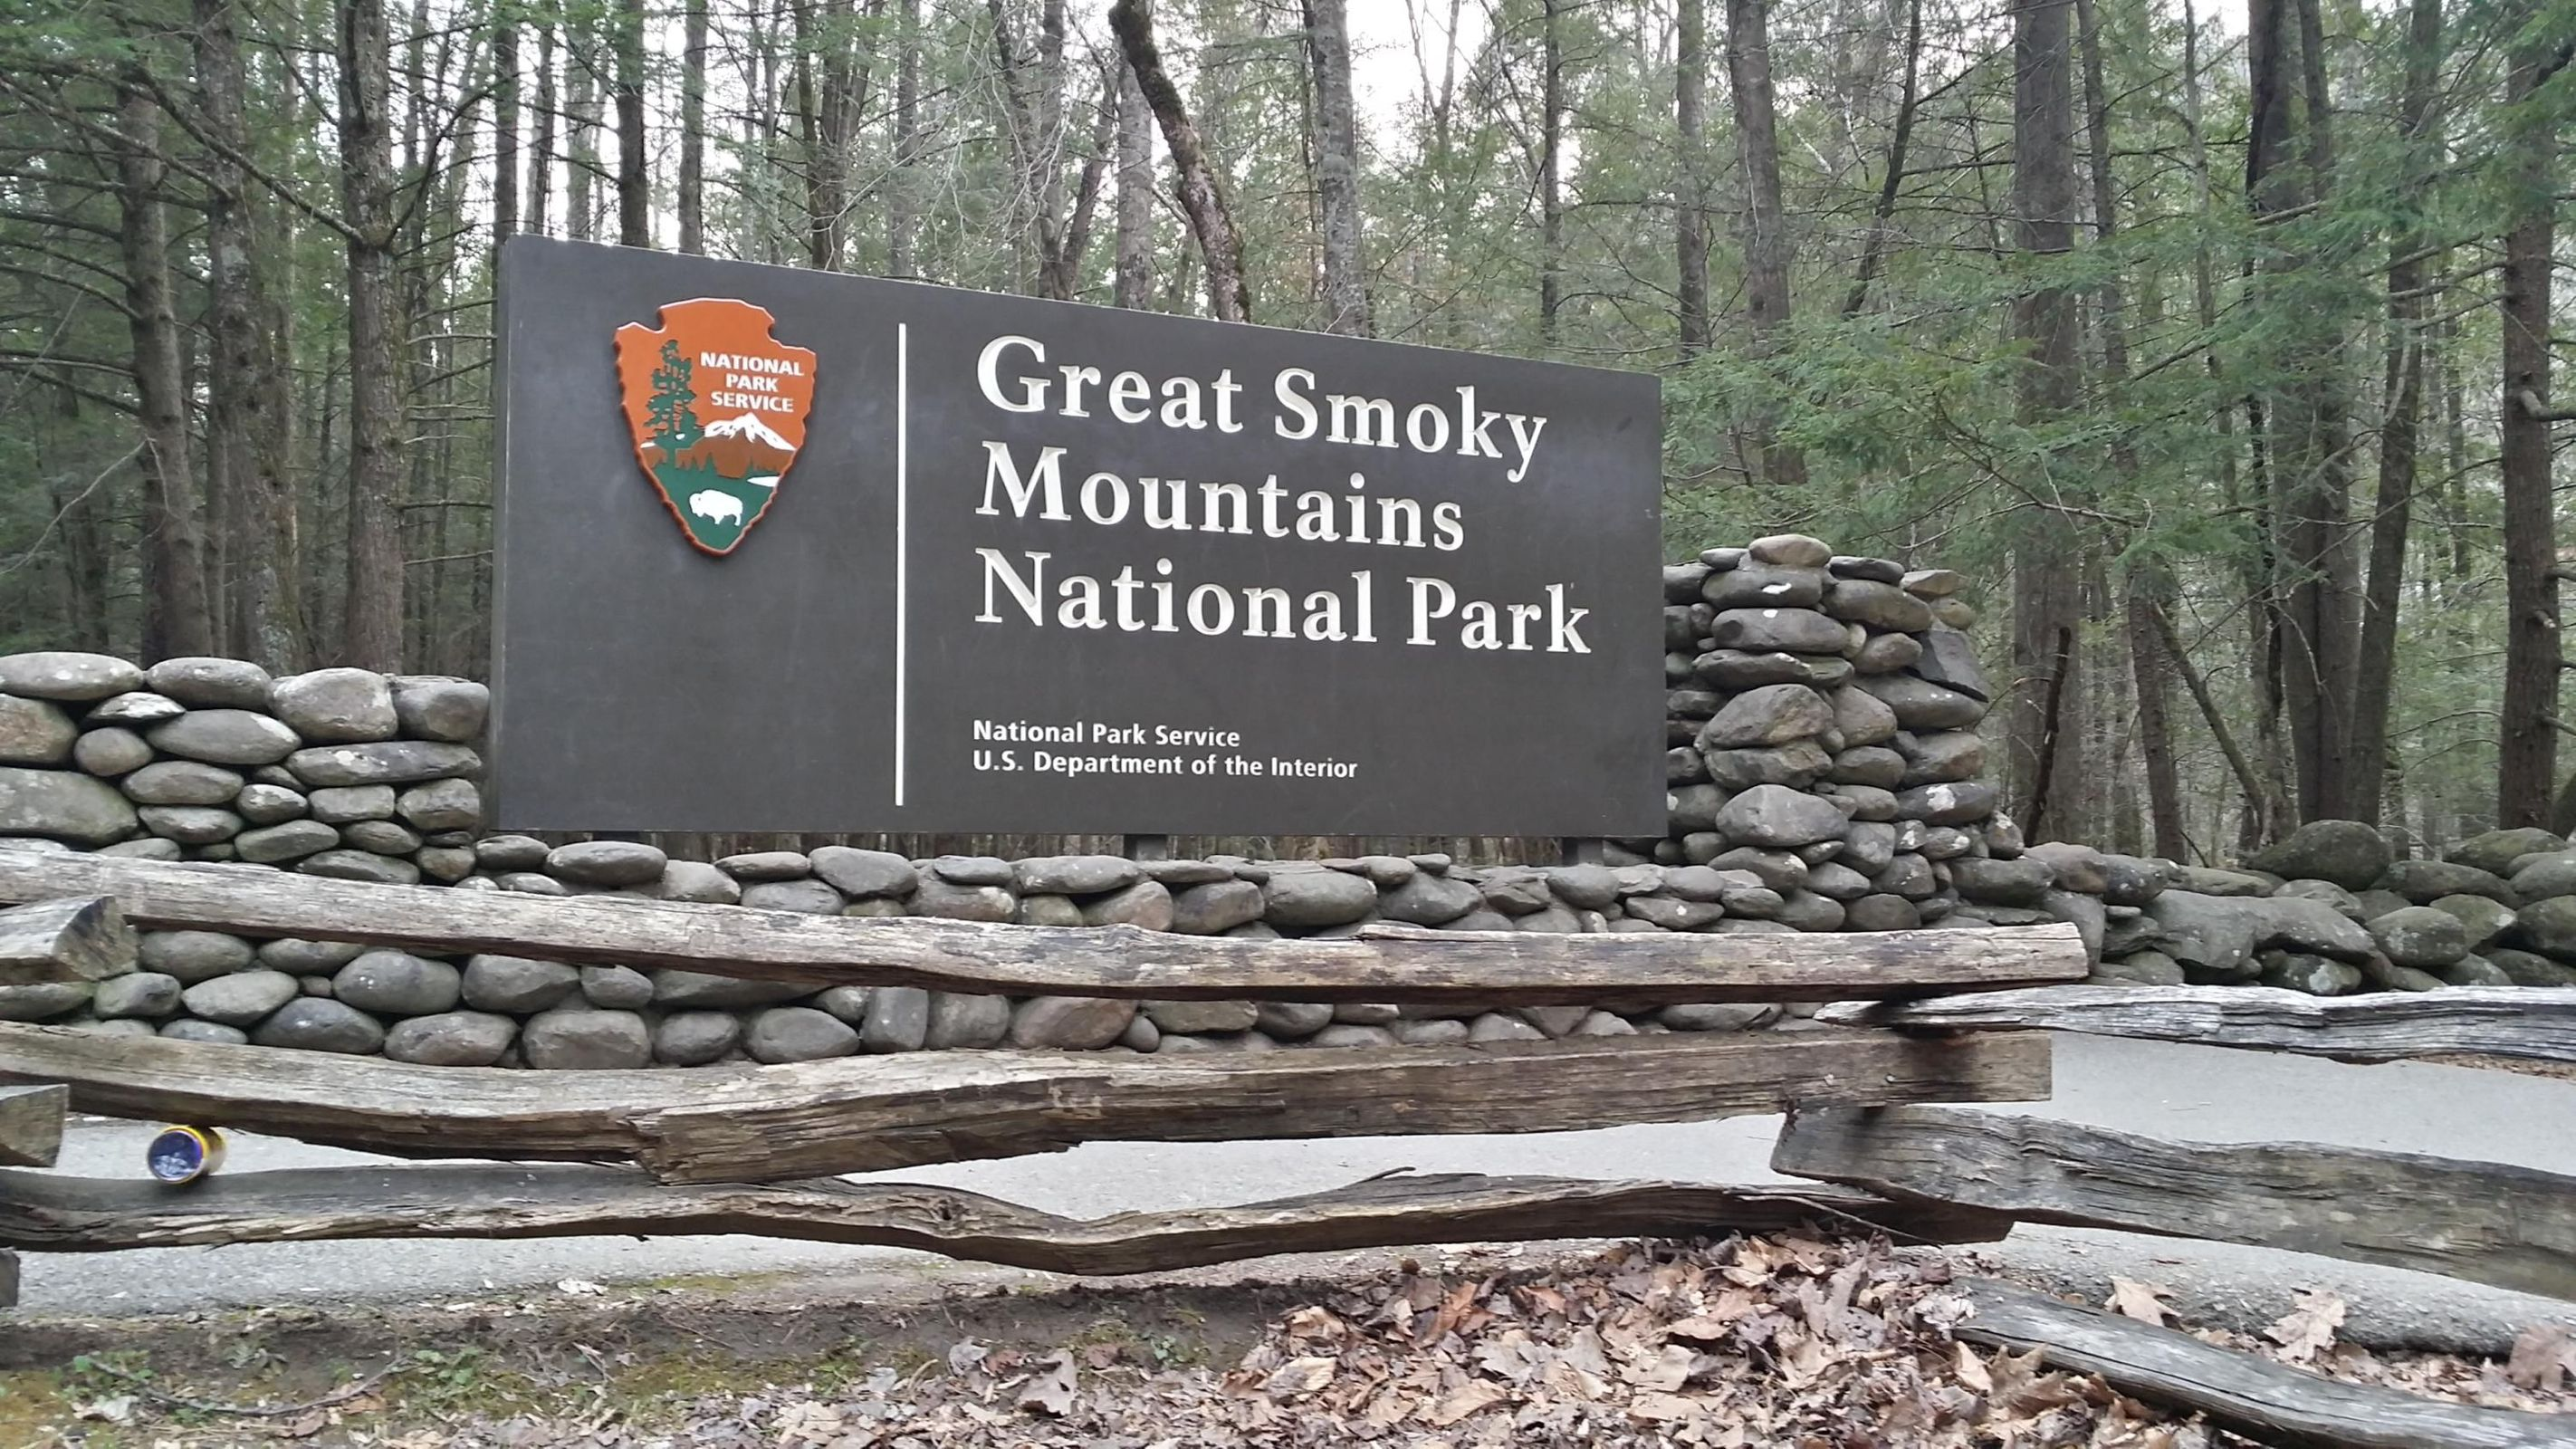 Great Smoky Mountains National Park sign